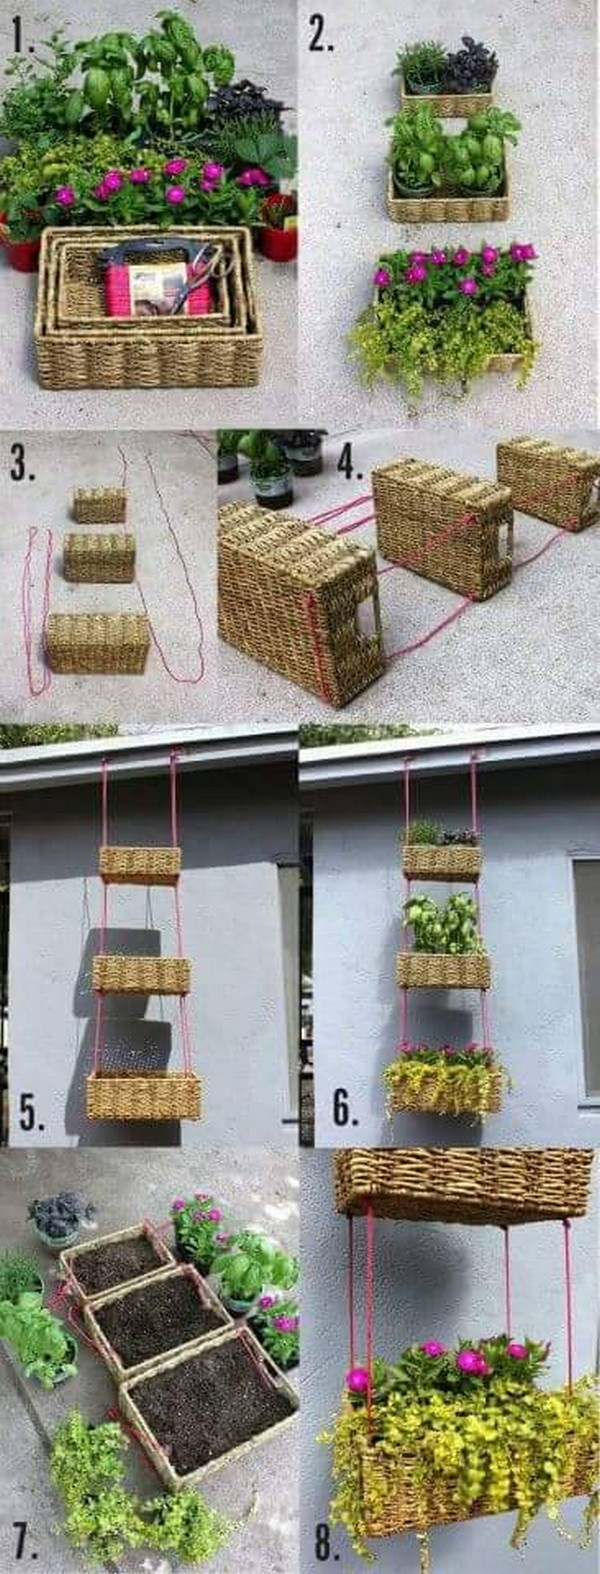 diy hanging plants